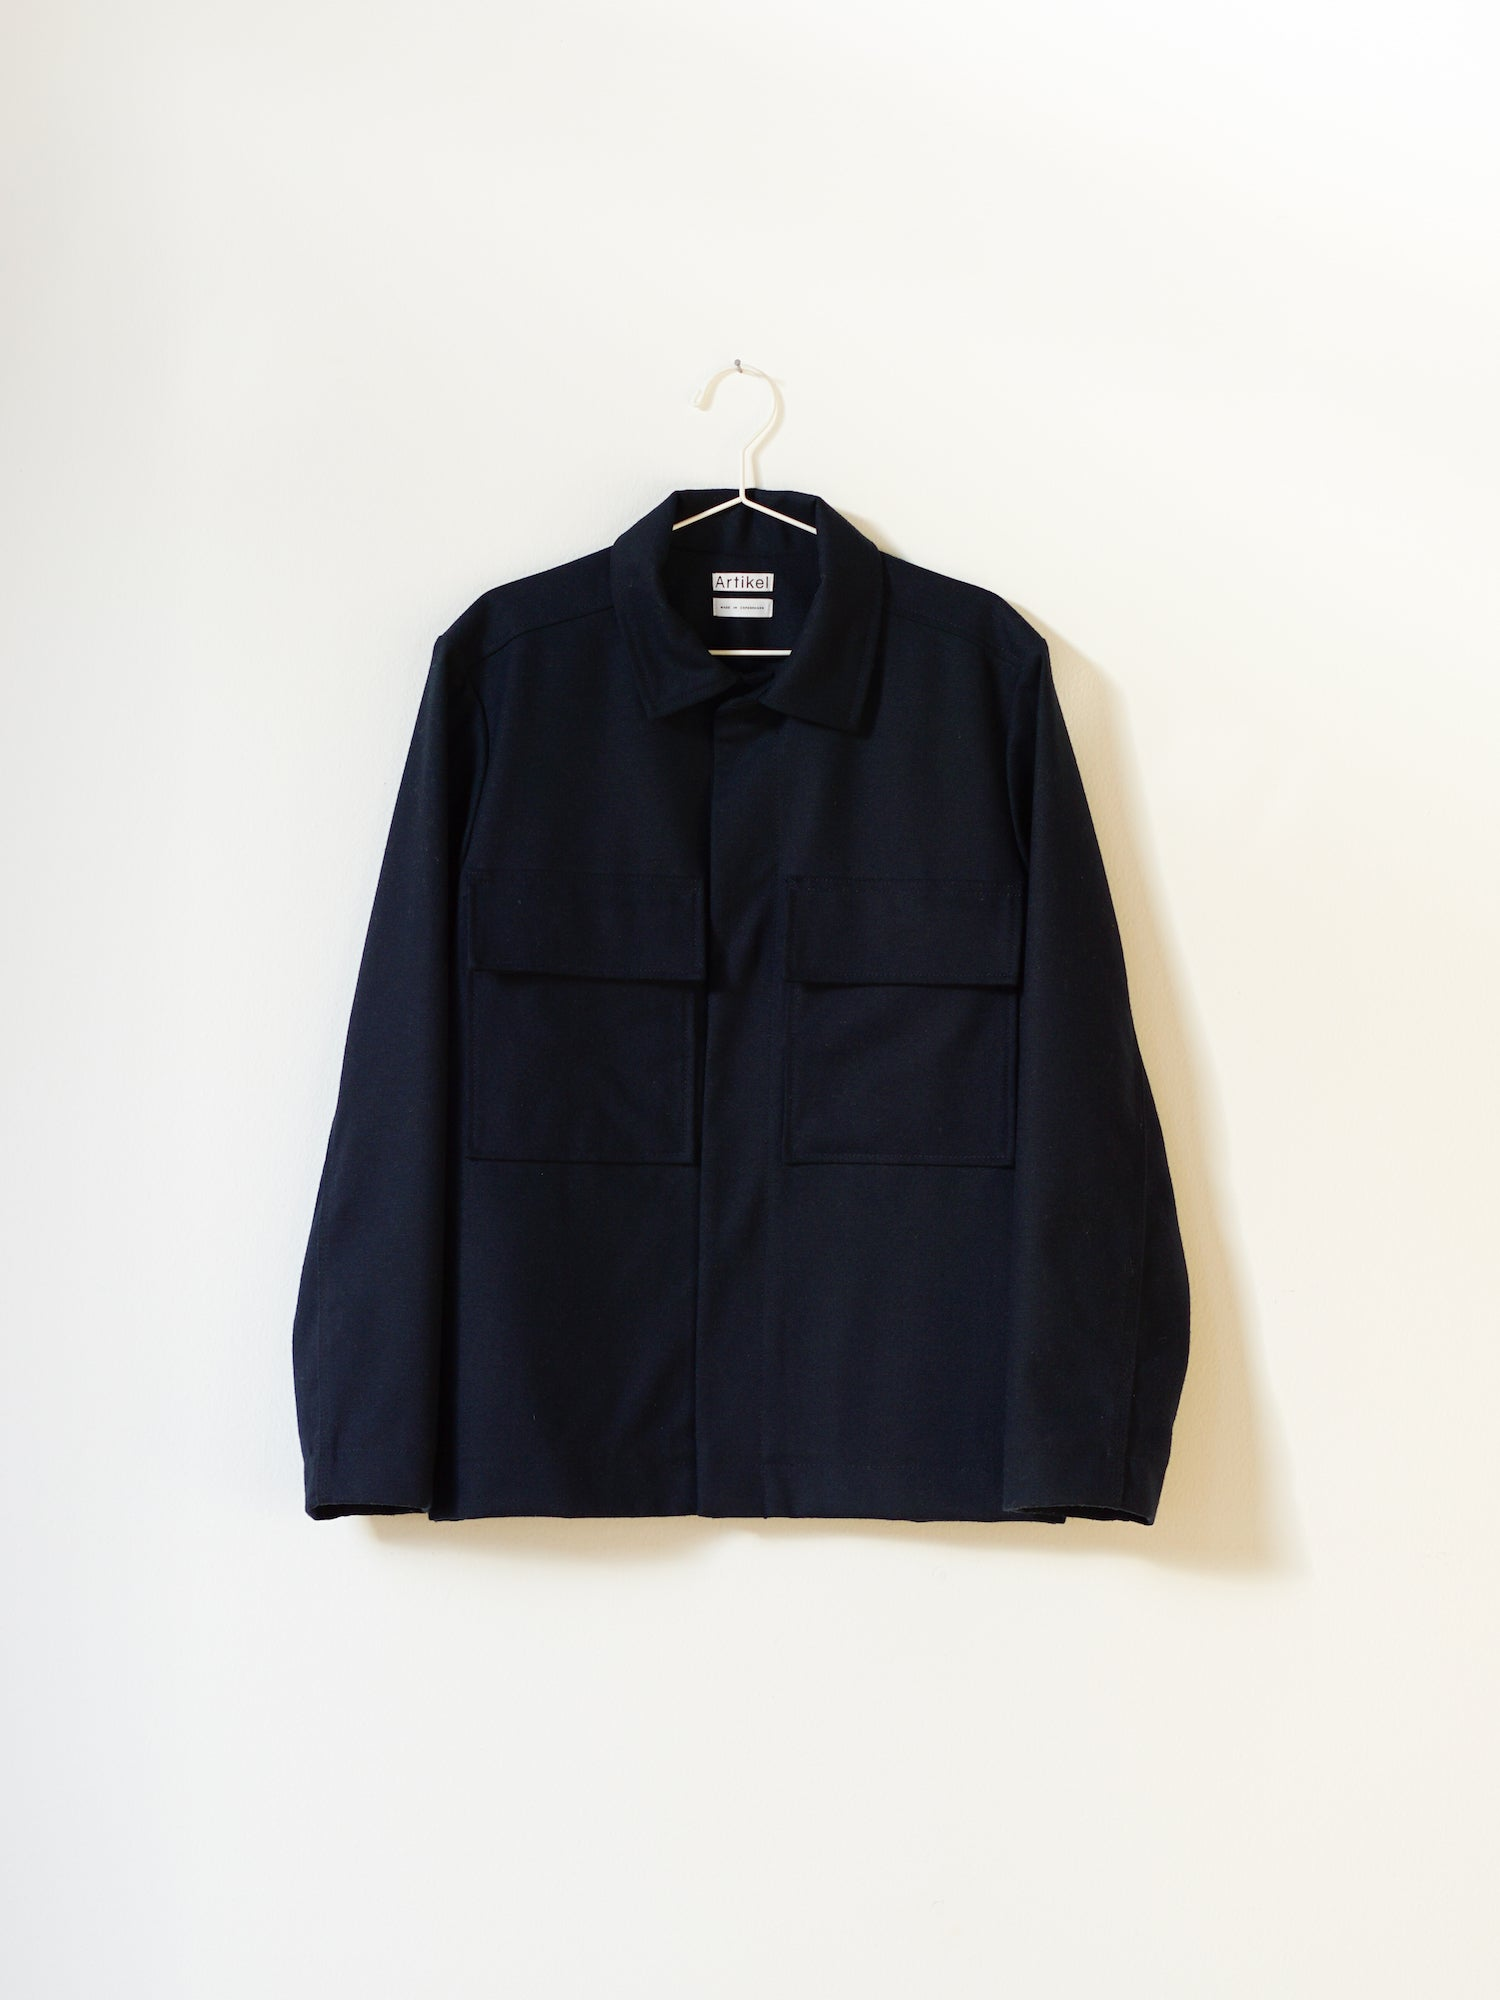 David Thulstrup x Artikel Transition DT3 Jacket